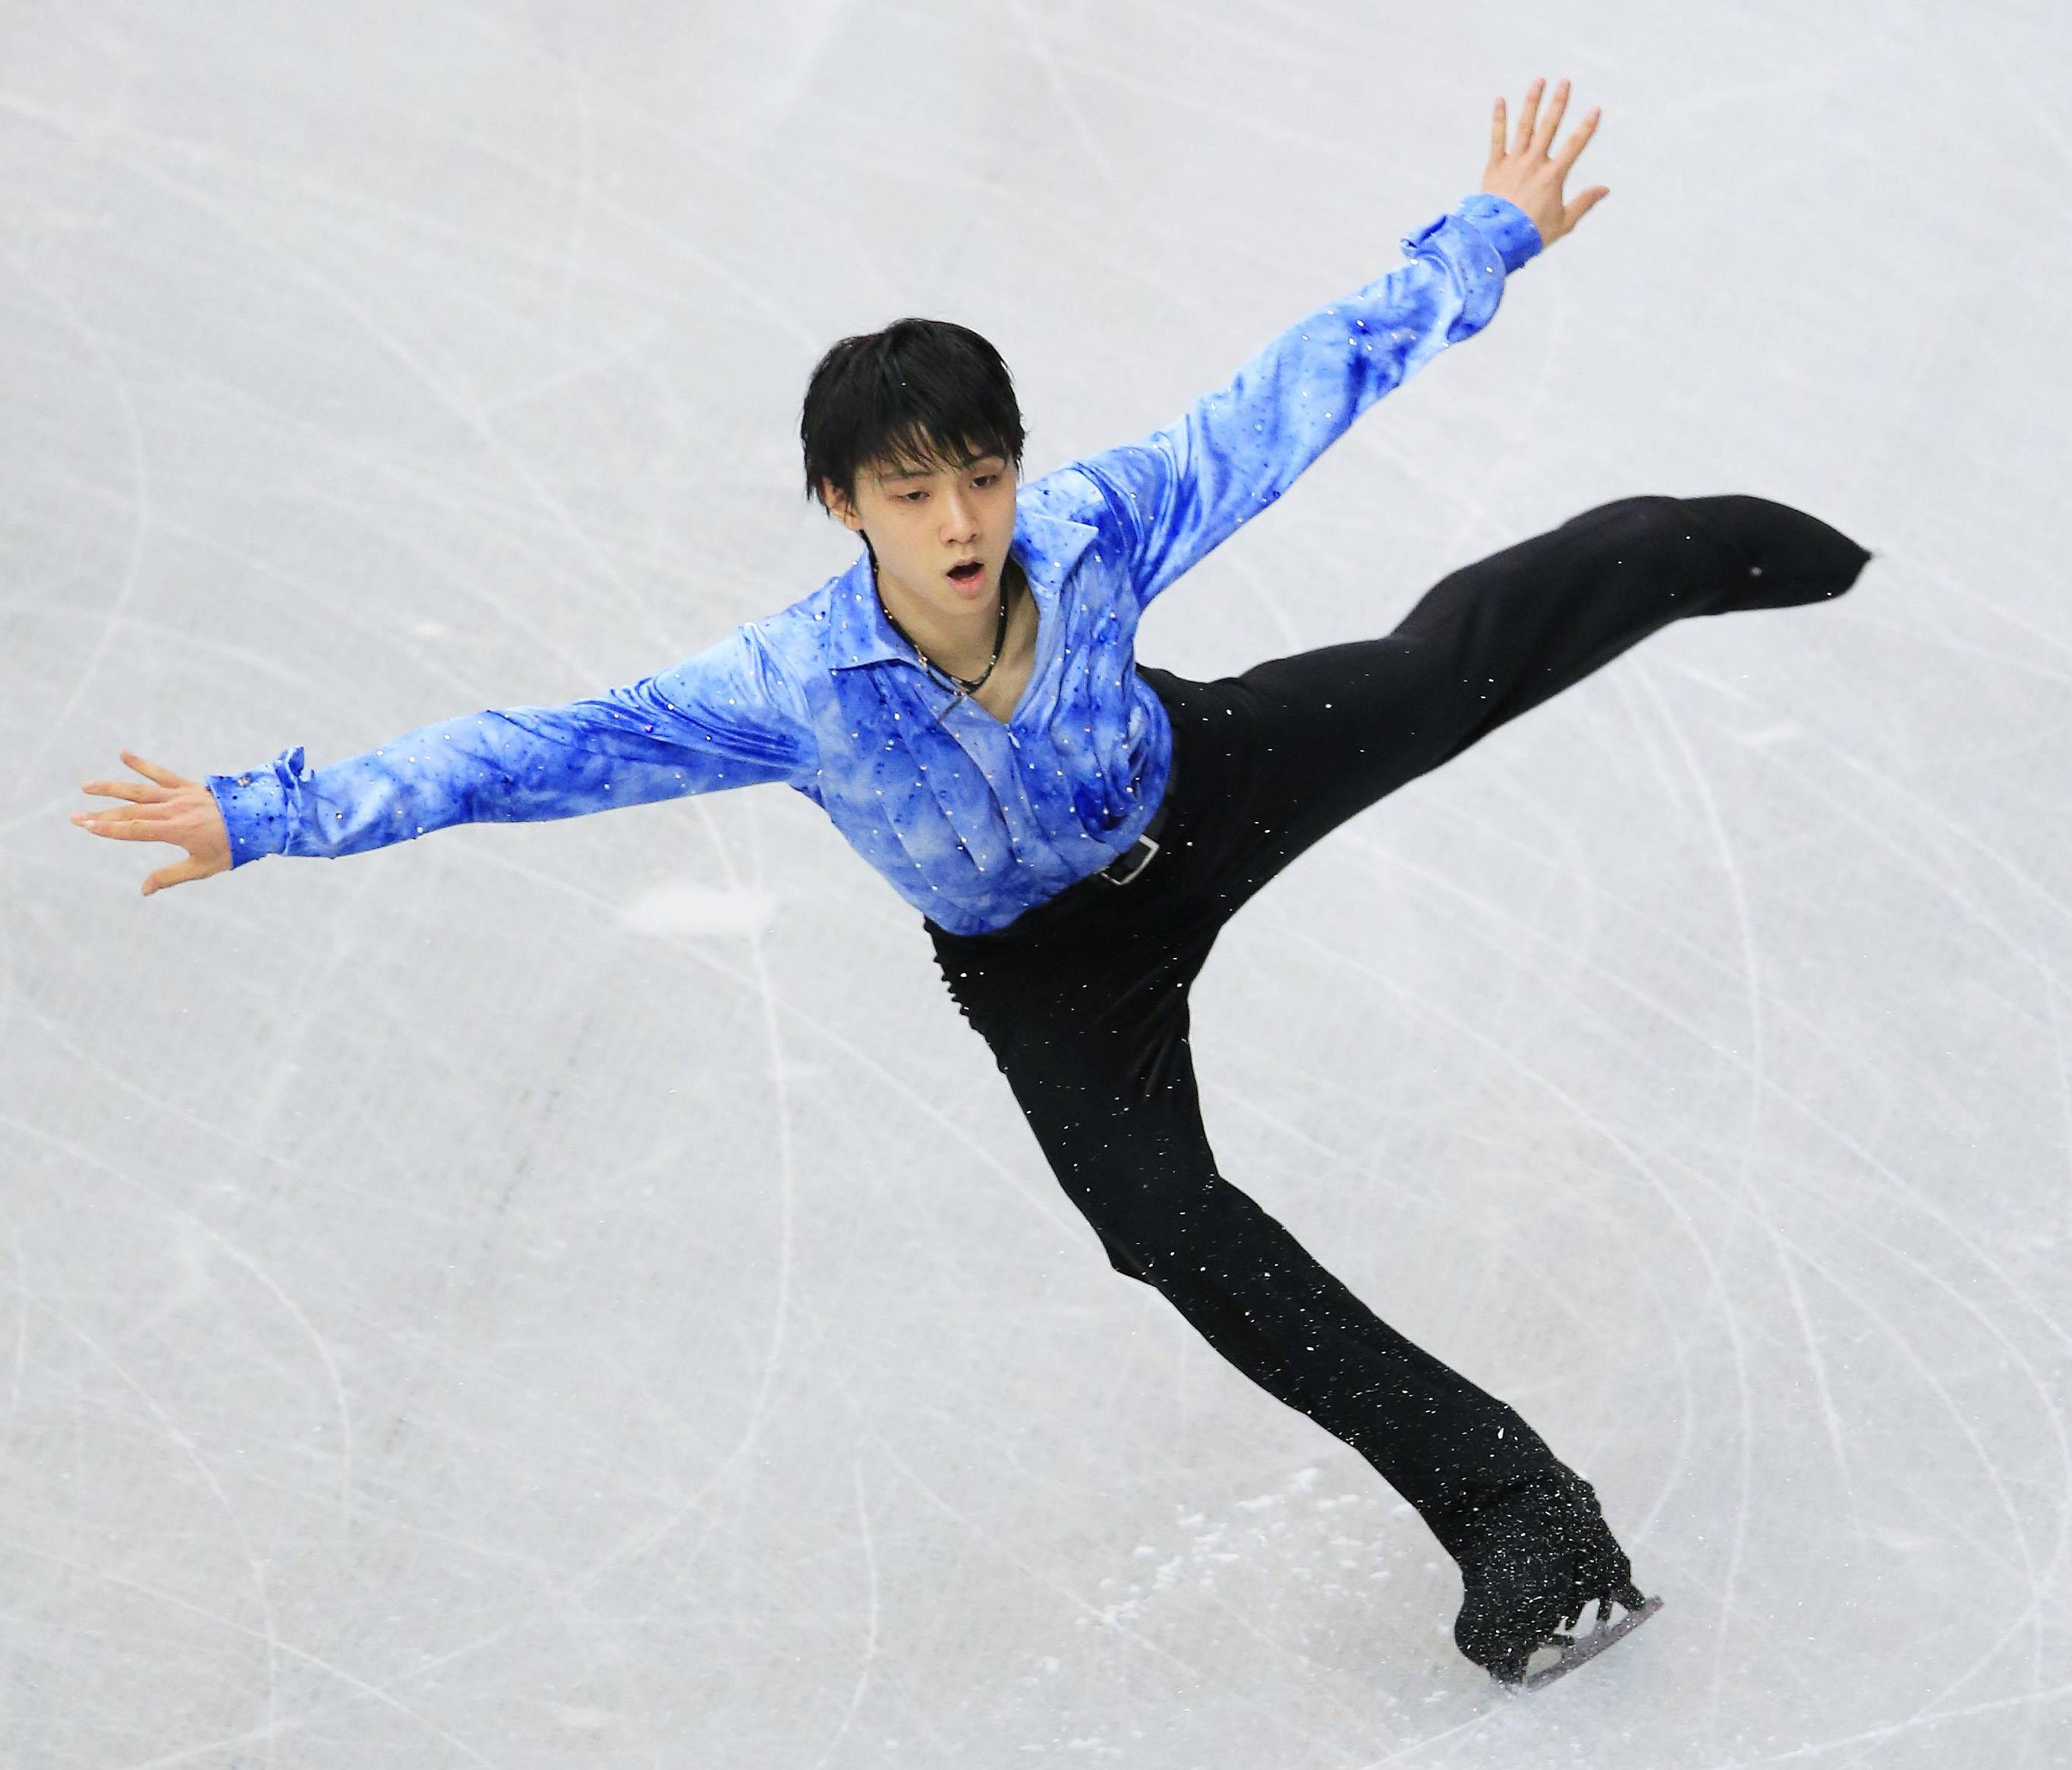 Splendid start: Yuzuru Hanyu performs during the men's short program at the national championships on Saturday at Saitama Super Arena. Hanyu earned 103.10 points and holds a commanding lead. | KYODO